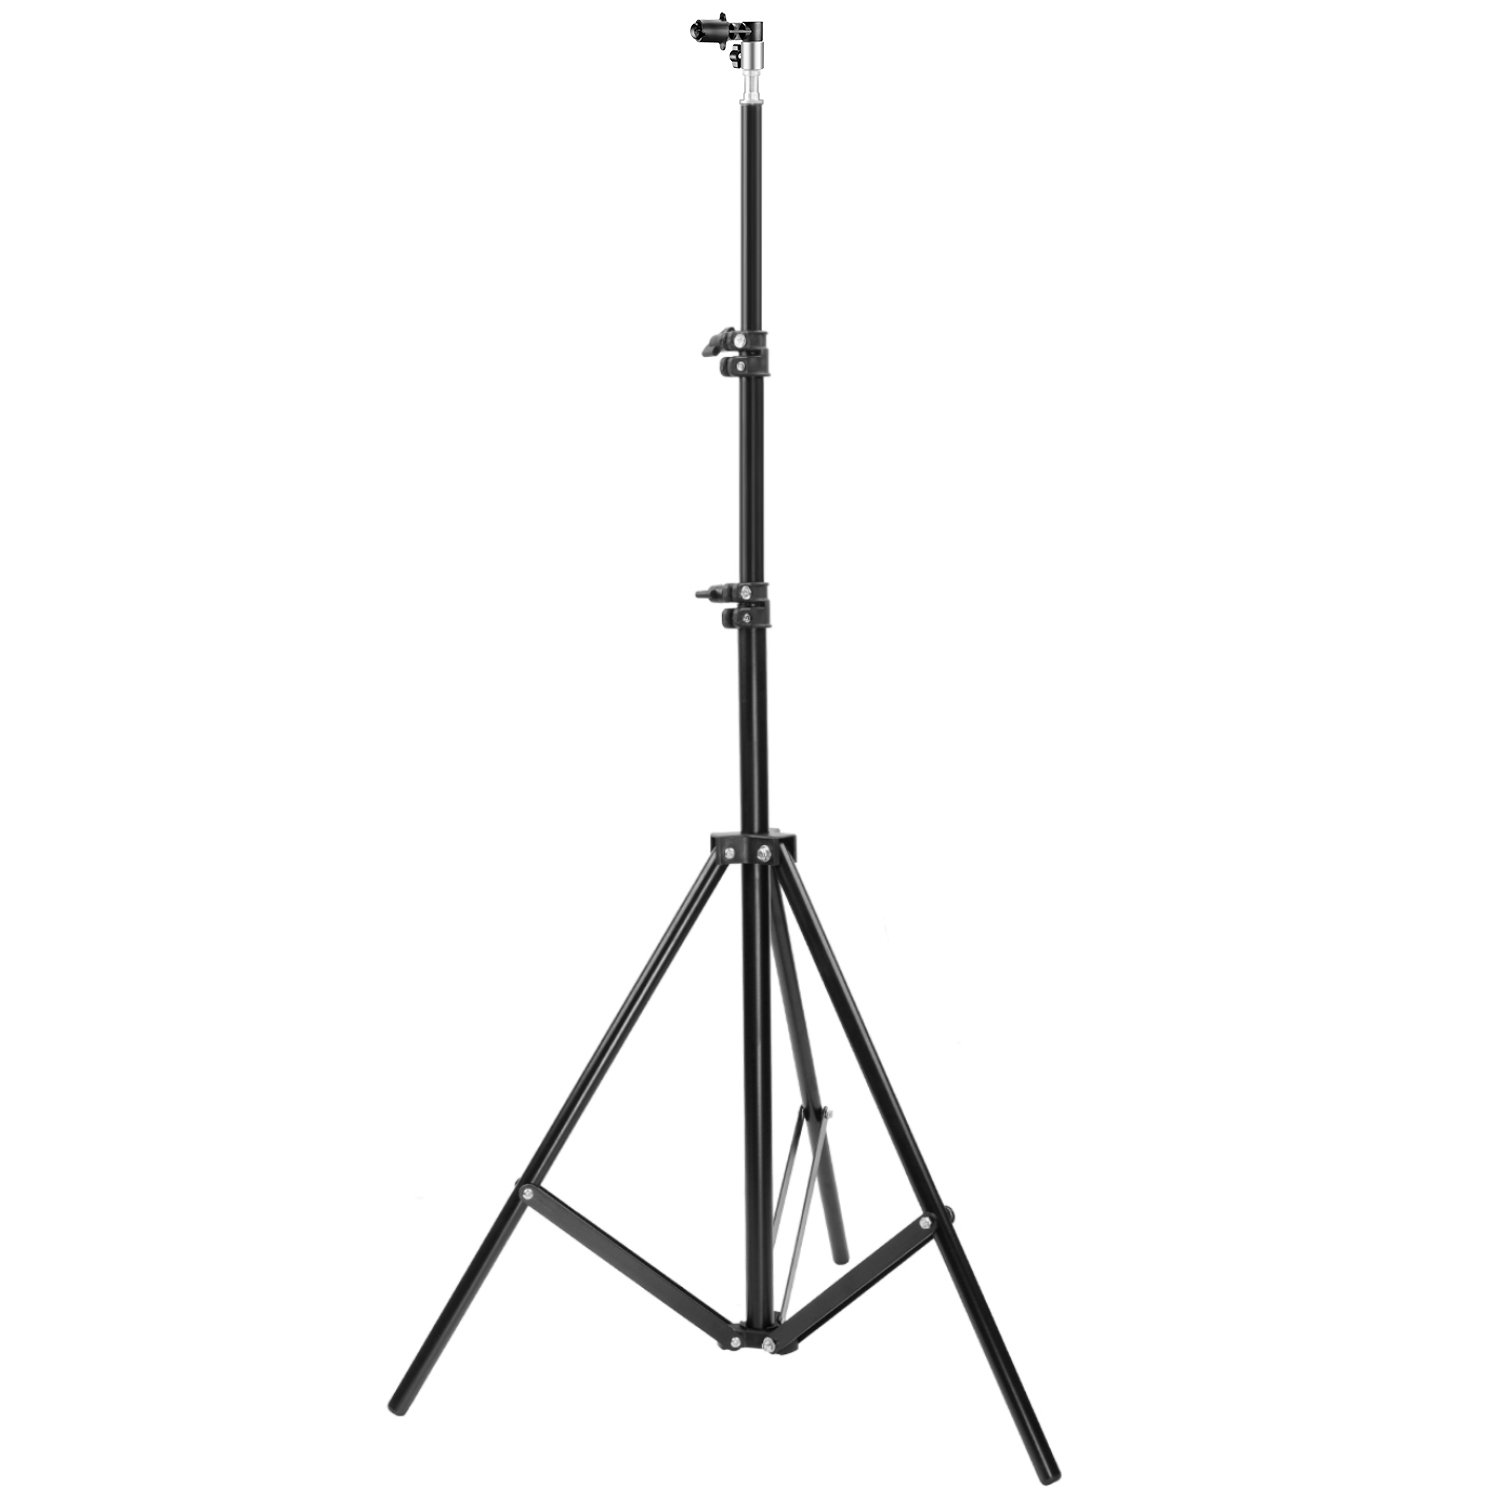 Neewer Adjustable Photography Studio Stand with Background and Reflector Disc Holder Clip, 8.53 feet/260 centimeters Aluminum Alloy Foldable Light Stand for Photo Equipment